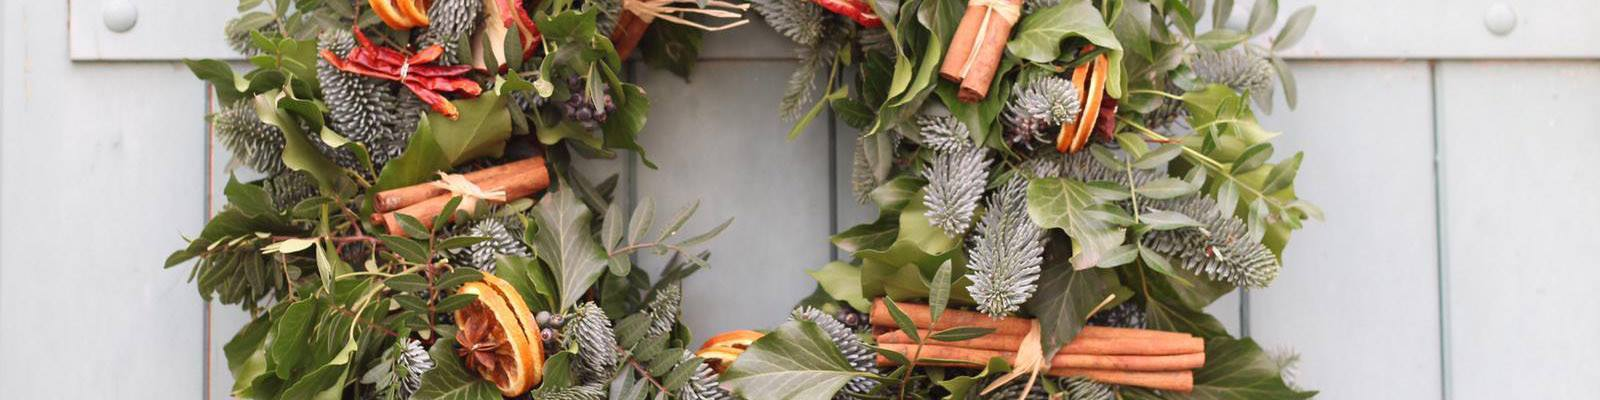 DIY Christmas Wreath Tuesday Night - Onshore Cellars